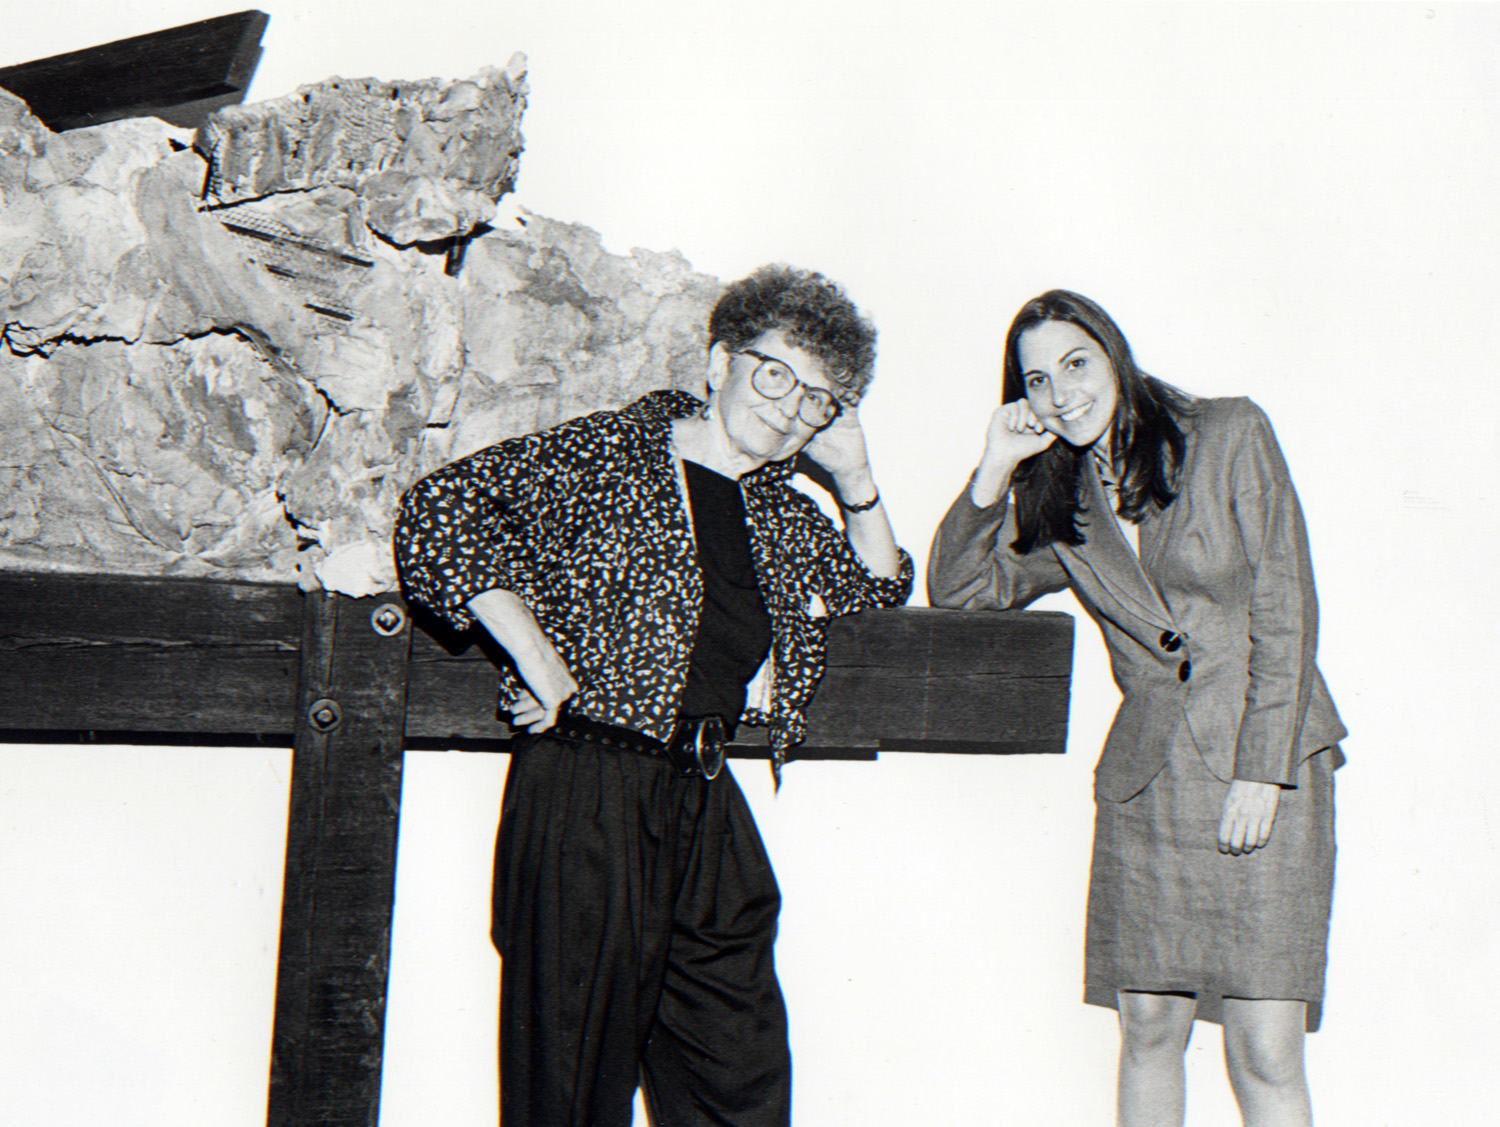 Phyllis Bilick and curator Barbara Matilsky,  The Expressionist Surface: Contemporary Art in Plaster , 1990